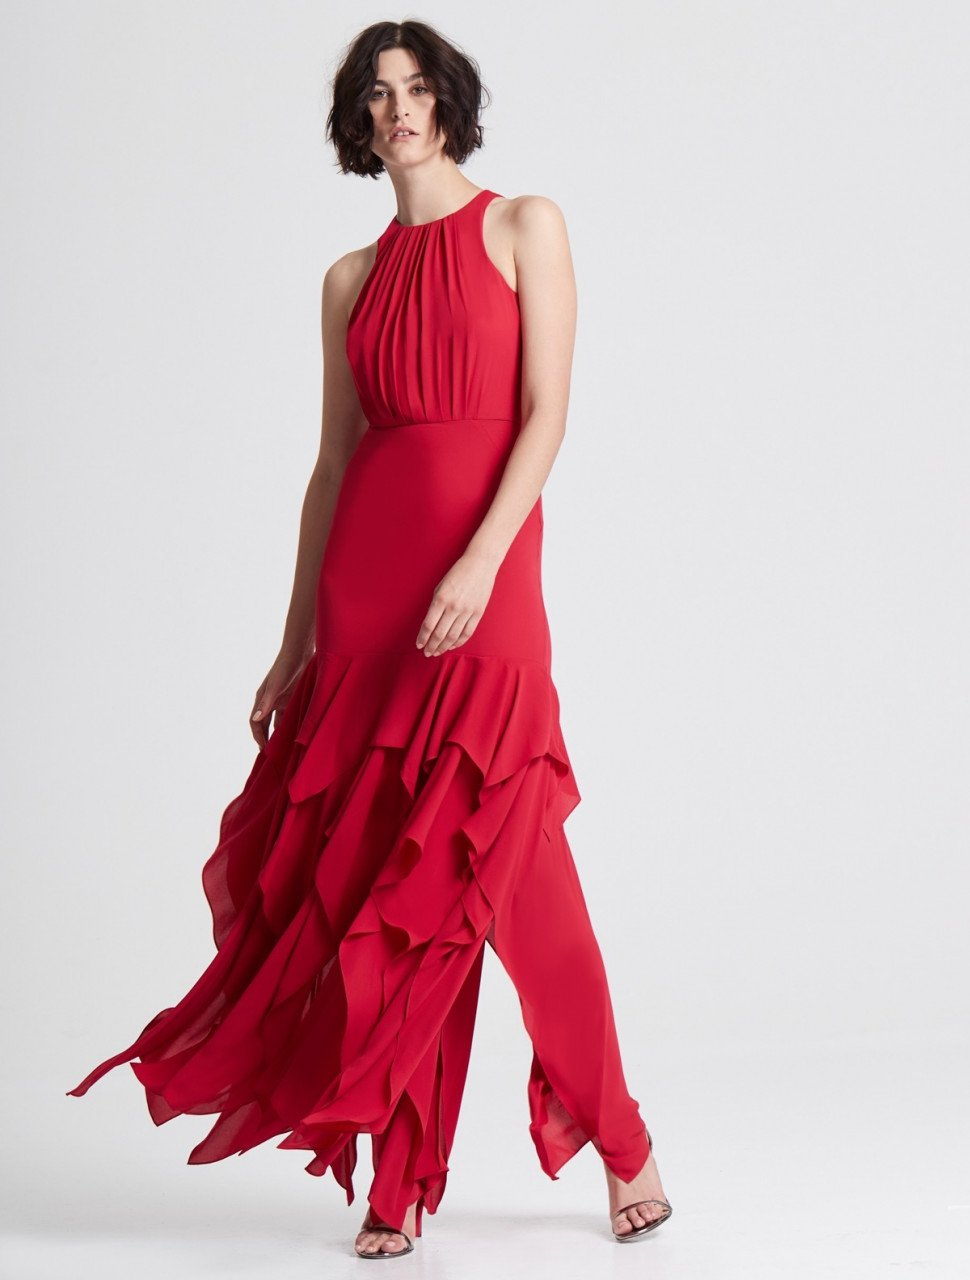 SLEEVELESS RUFFLE SKIRT SILKY GEORGETTE GOWN